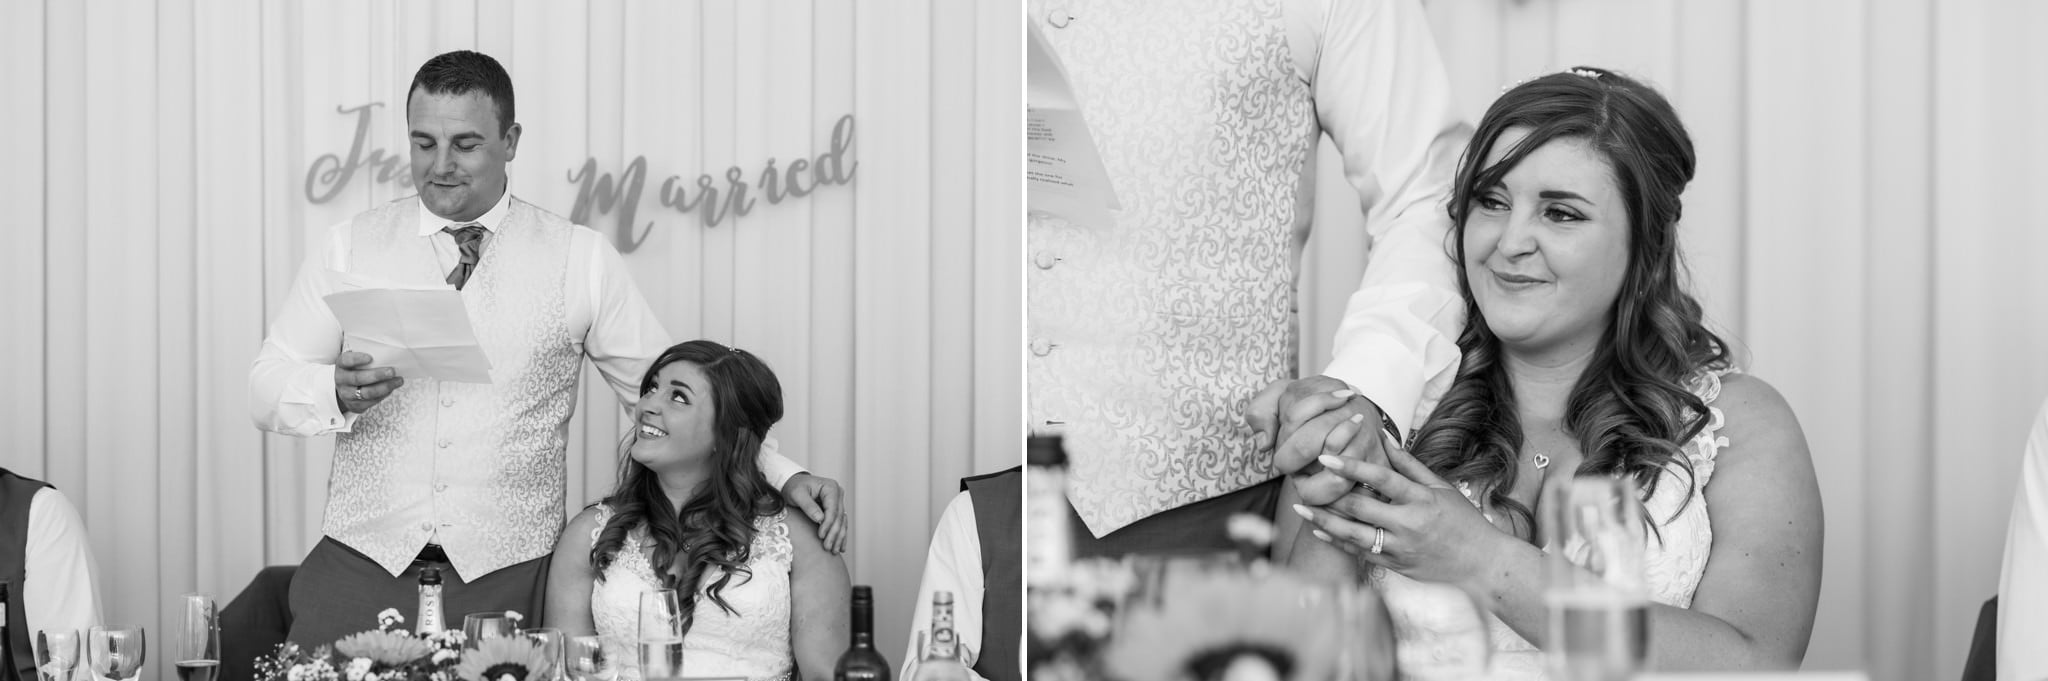 Black and white wedding photography at Gordleton Mill